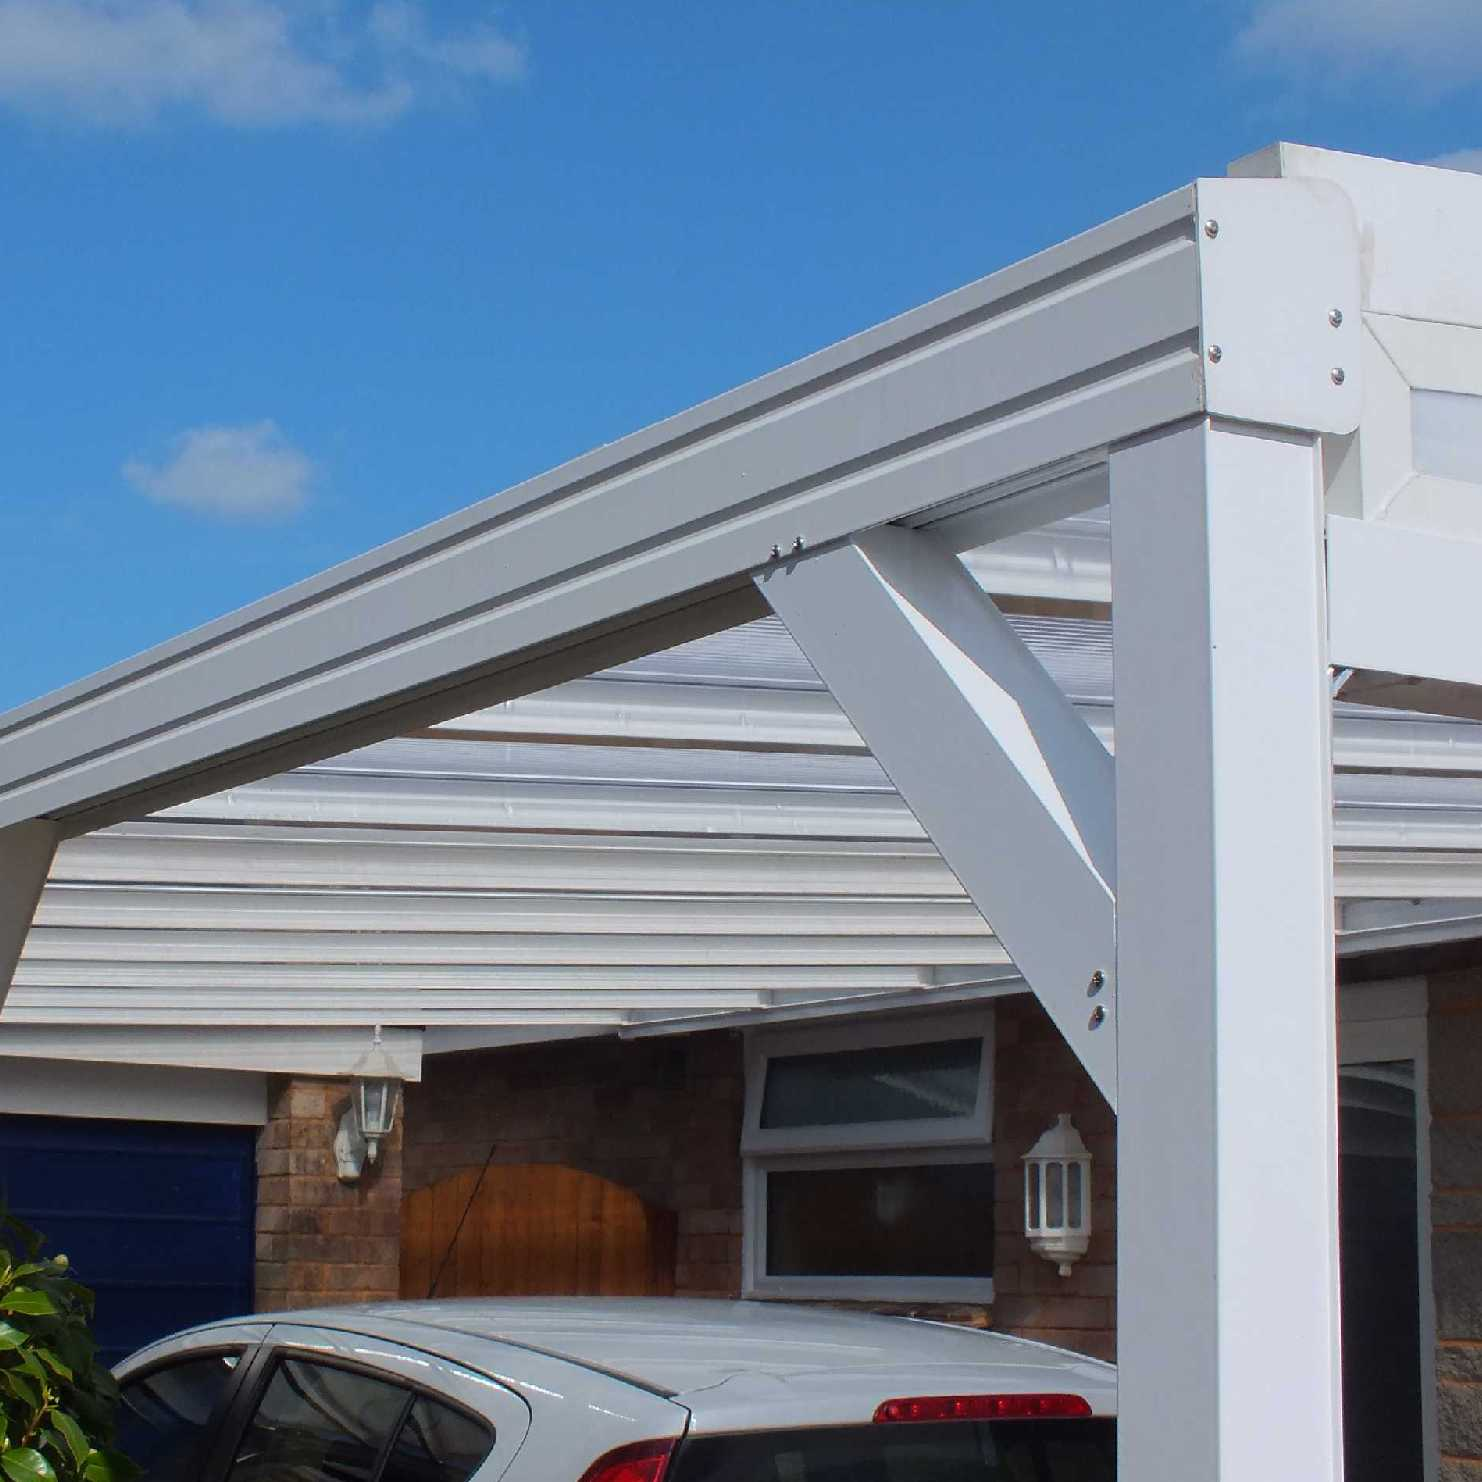 Great deals on Omega Smart White Lean-To Canopy with 16mm Polycarbonate Glazing - 11.6m (W) x 2.0m (P), (5) Supporting Posts